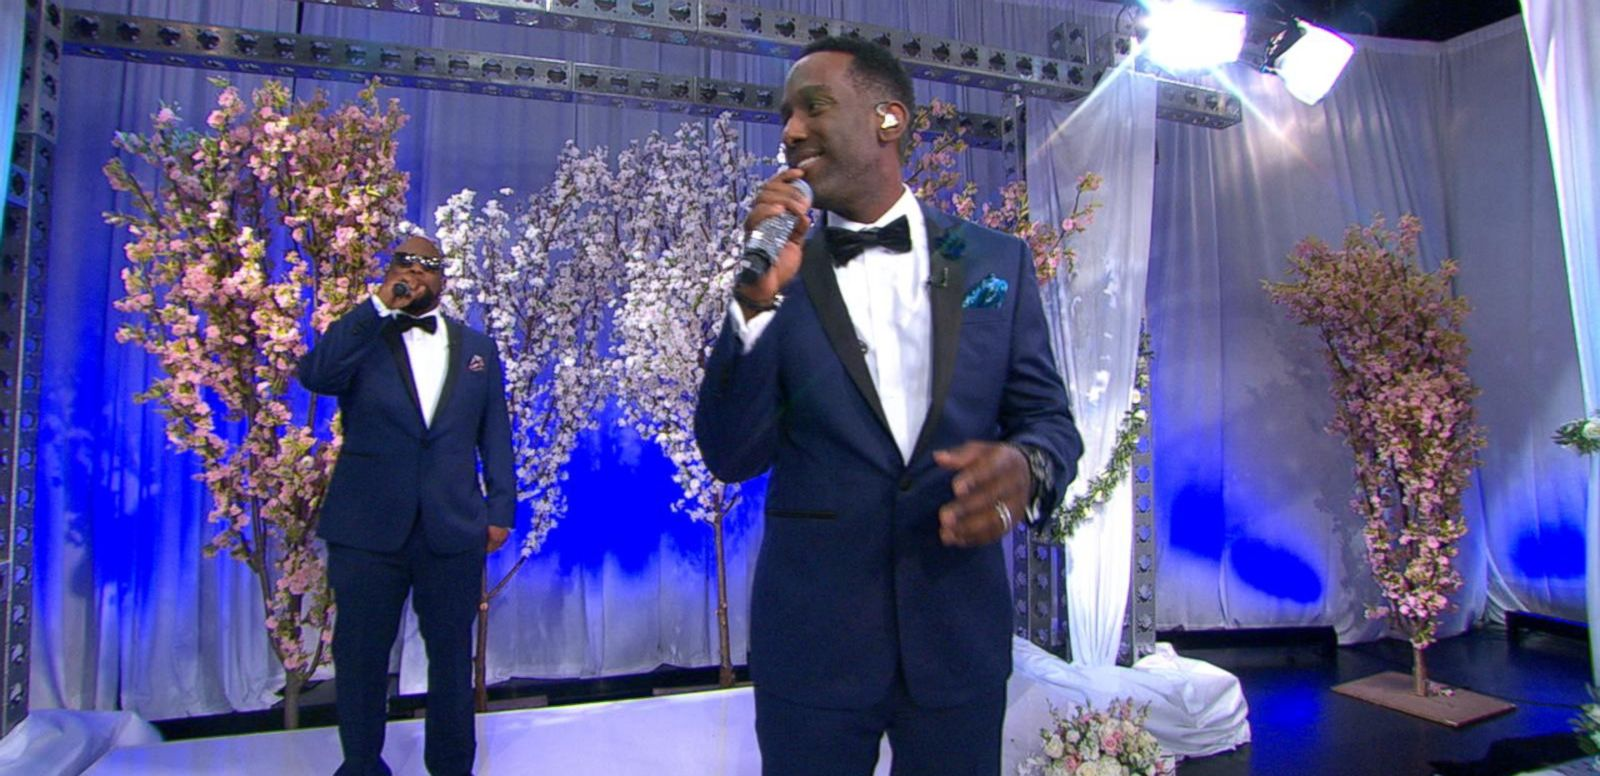 VIDEO: Wide World of Weddings: Boyz II Men Perform 'On Bended Knee' Live on 'GMA'